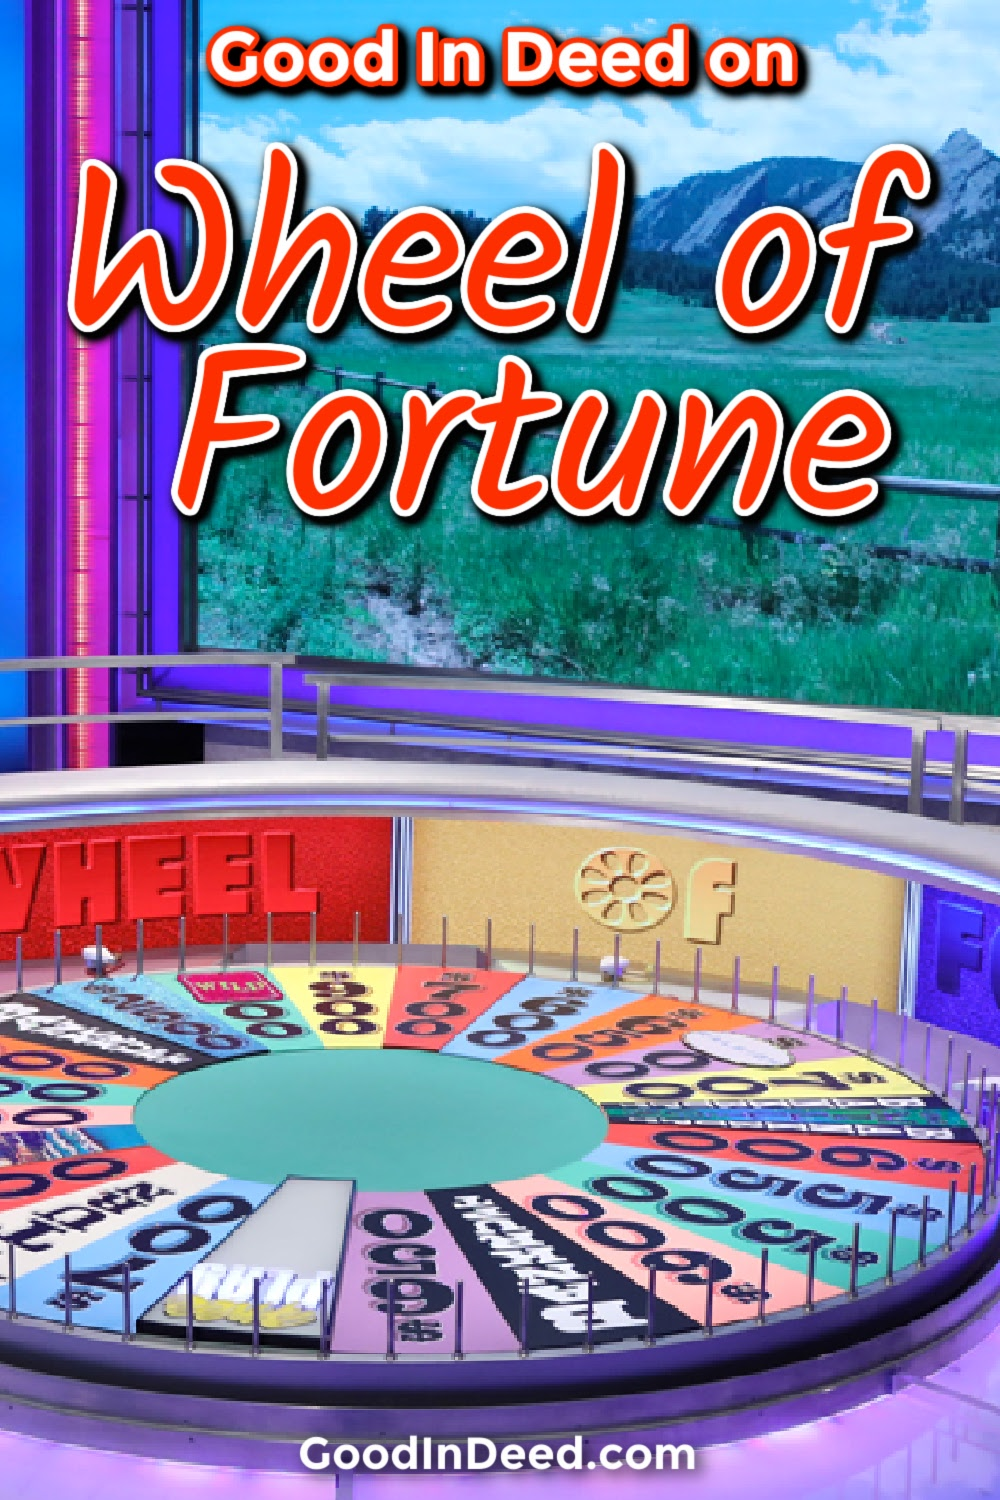 Good In Deed on Wheel of Fortune will air soon, but this is so much more than just a game show that Good In Deed has been on.